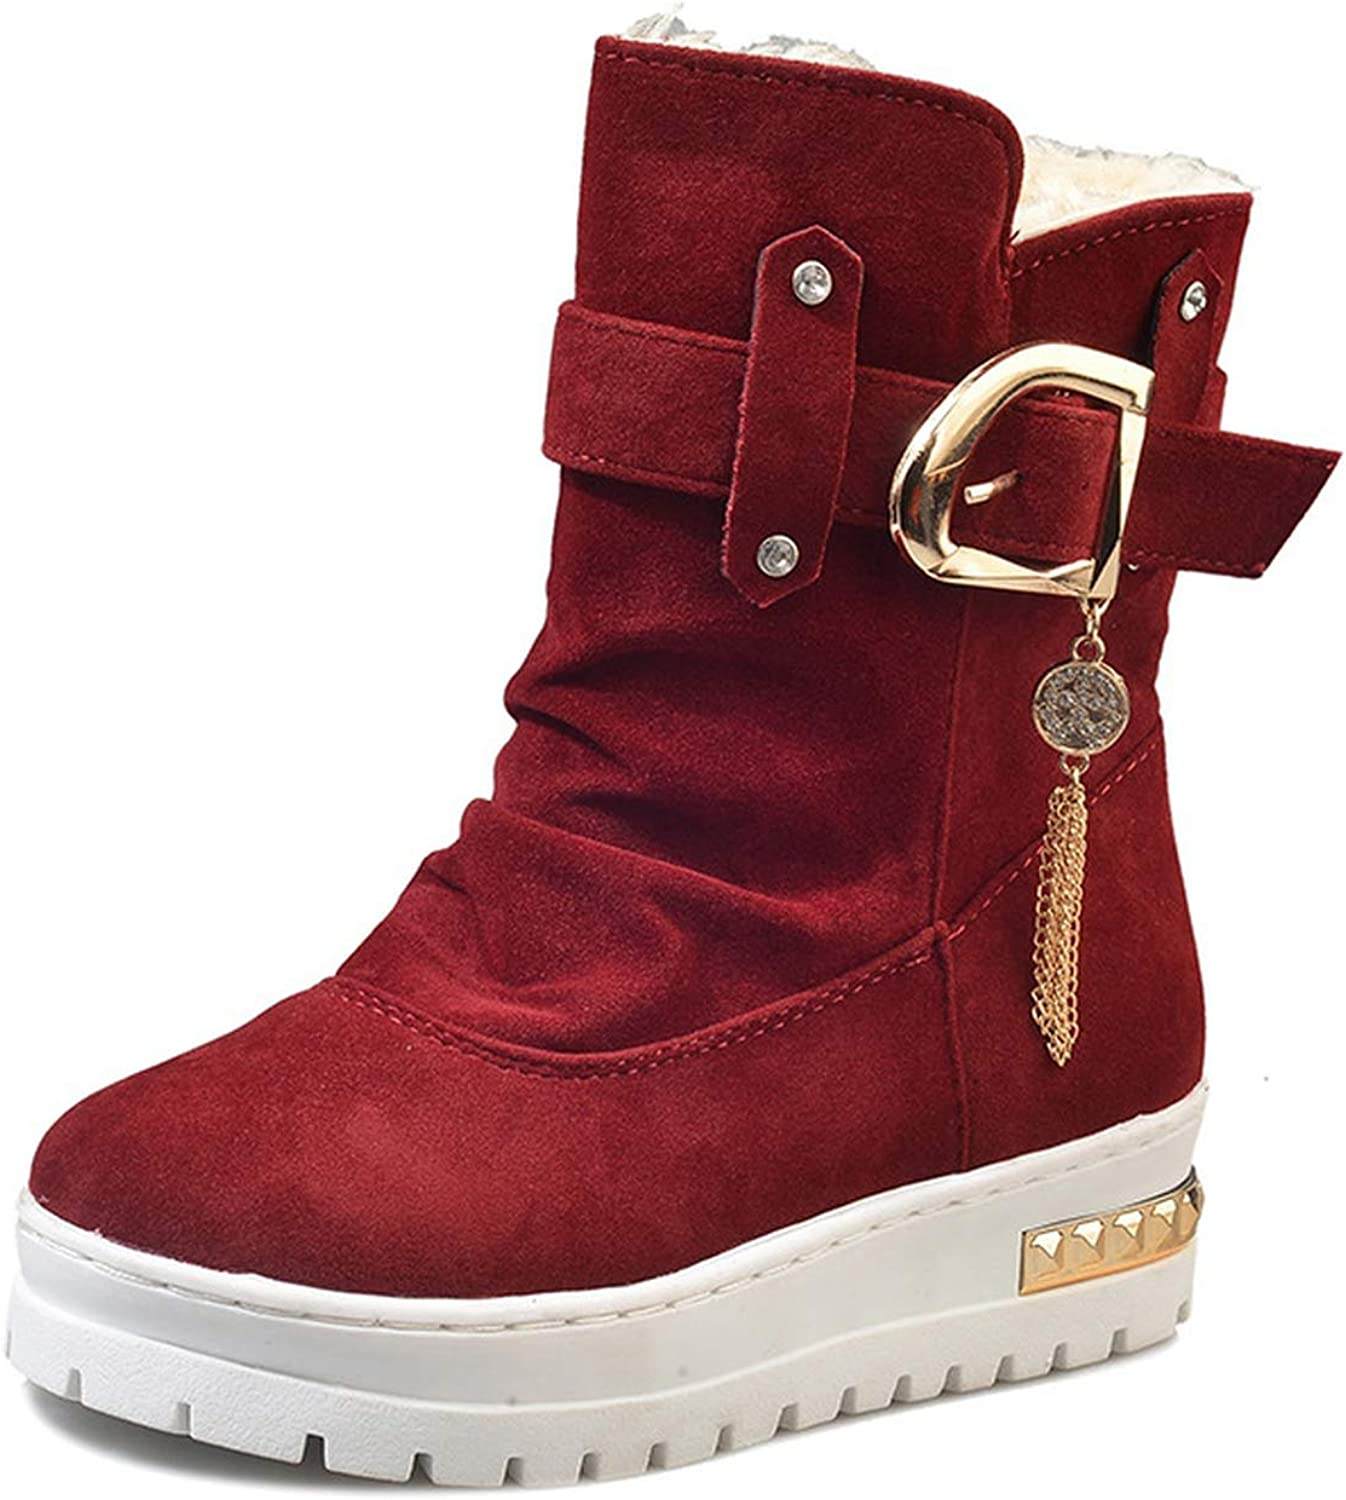 Welcometoo Women Winter shoes Antiskid Keep Warm Winter shoes Women Winter Boots Women Warm Snow Boots Warm Fur Plush Insole Ankle Boots